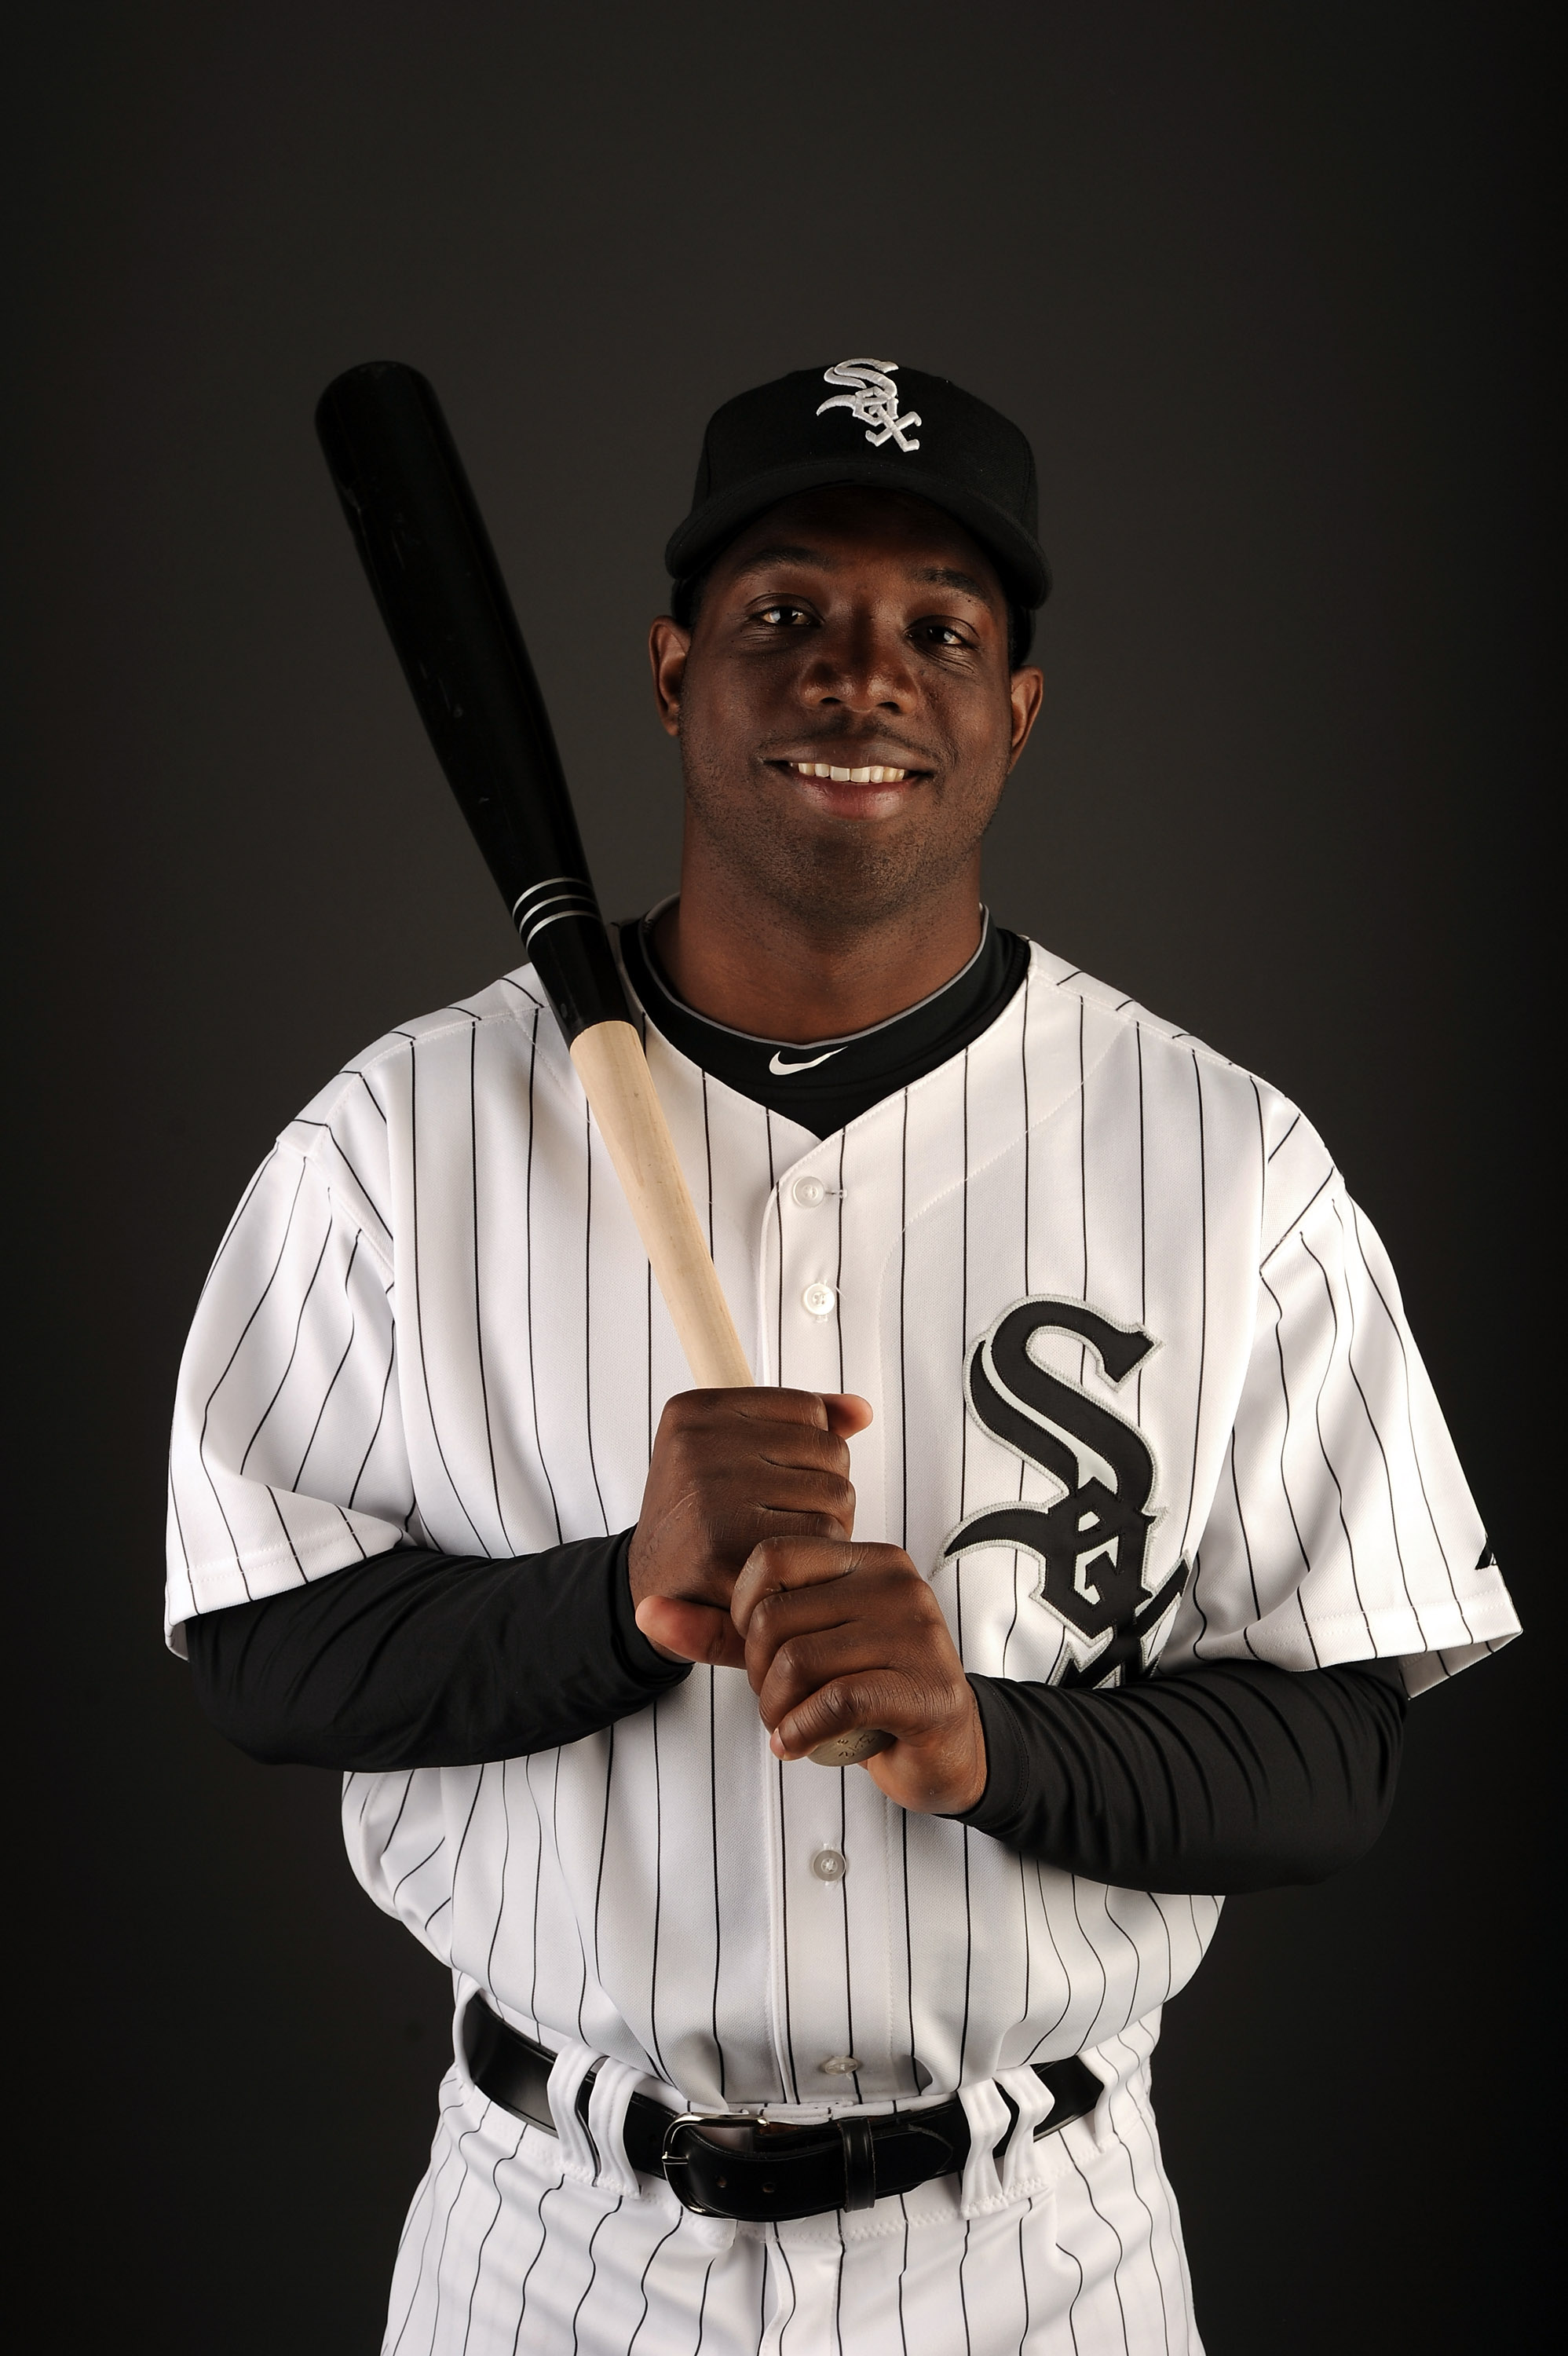 GLENDALE, AZ - FEBRUARY 26:  Lastings Milledge #5 of the Chicago White Sox poses for a photo on photo day at Camelback Ranch on February 26, 2011 in Glendale, Arizona.  (Photo by Harry How/Getty Images)